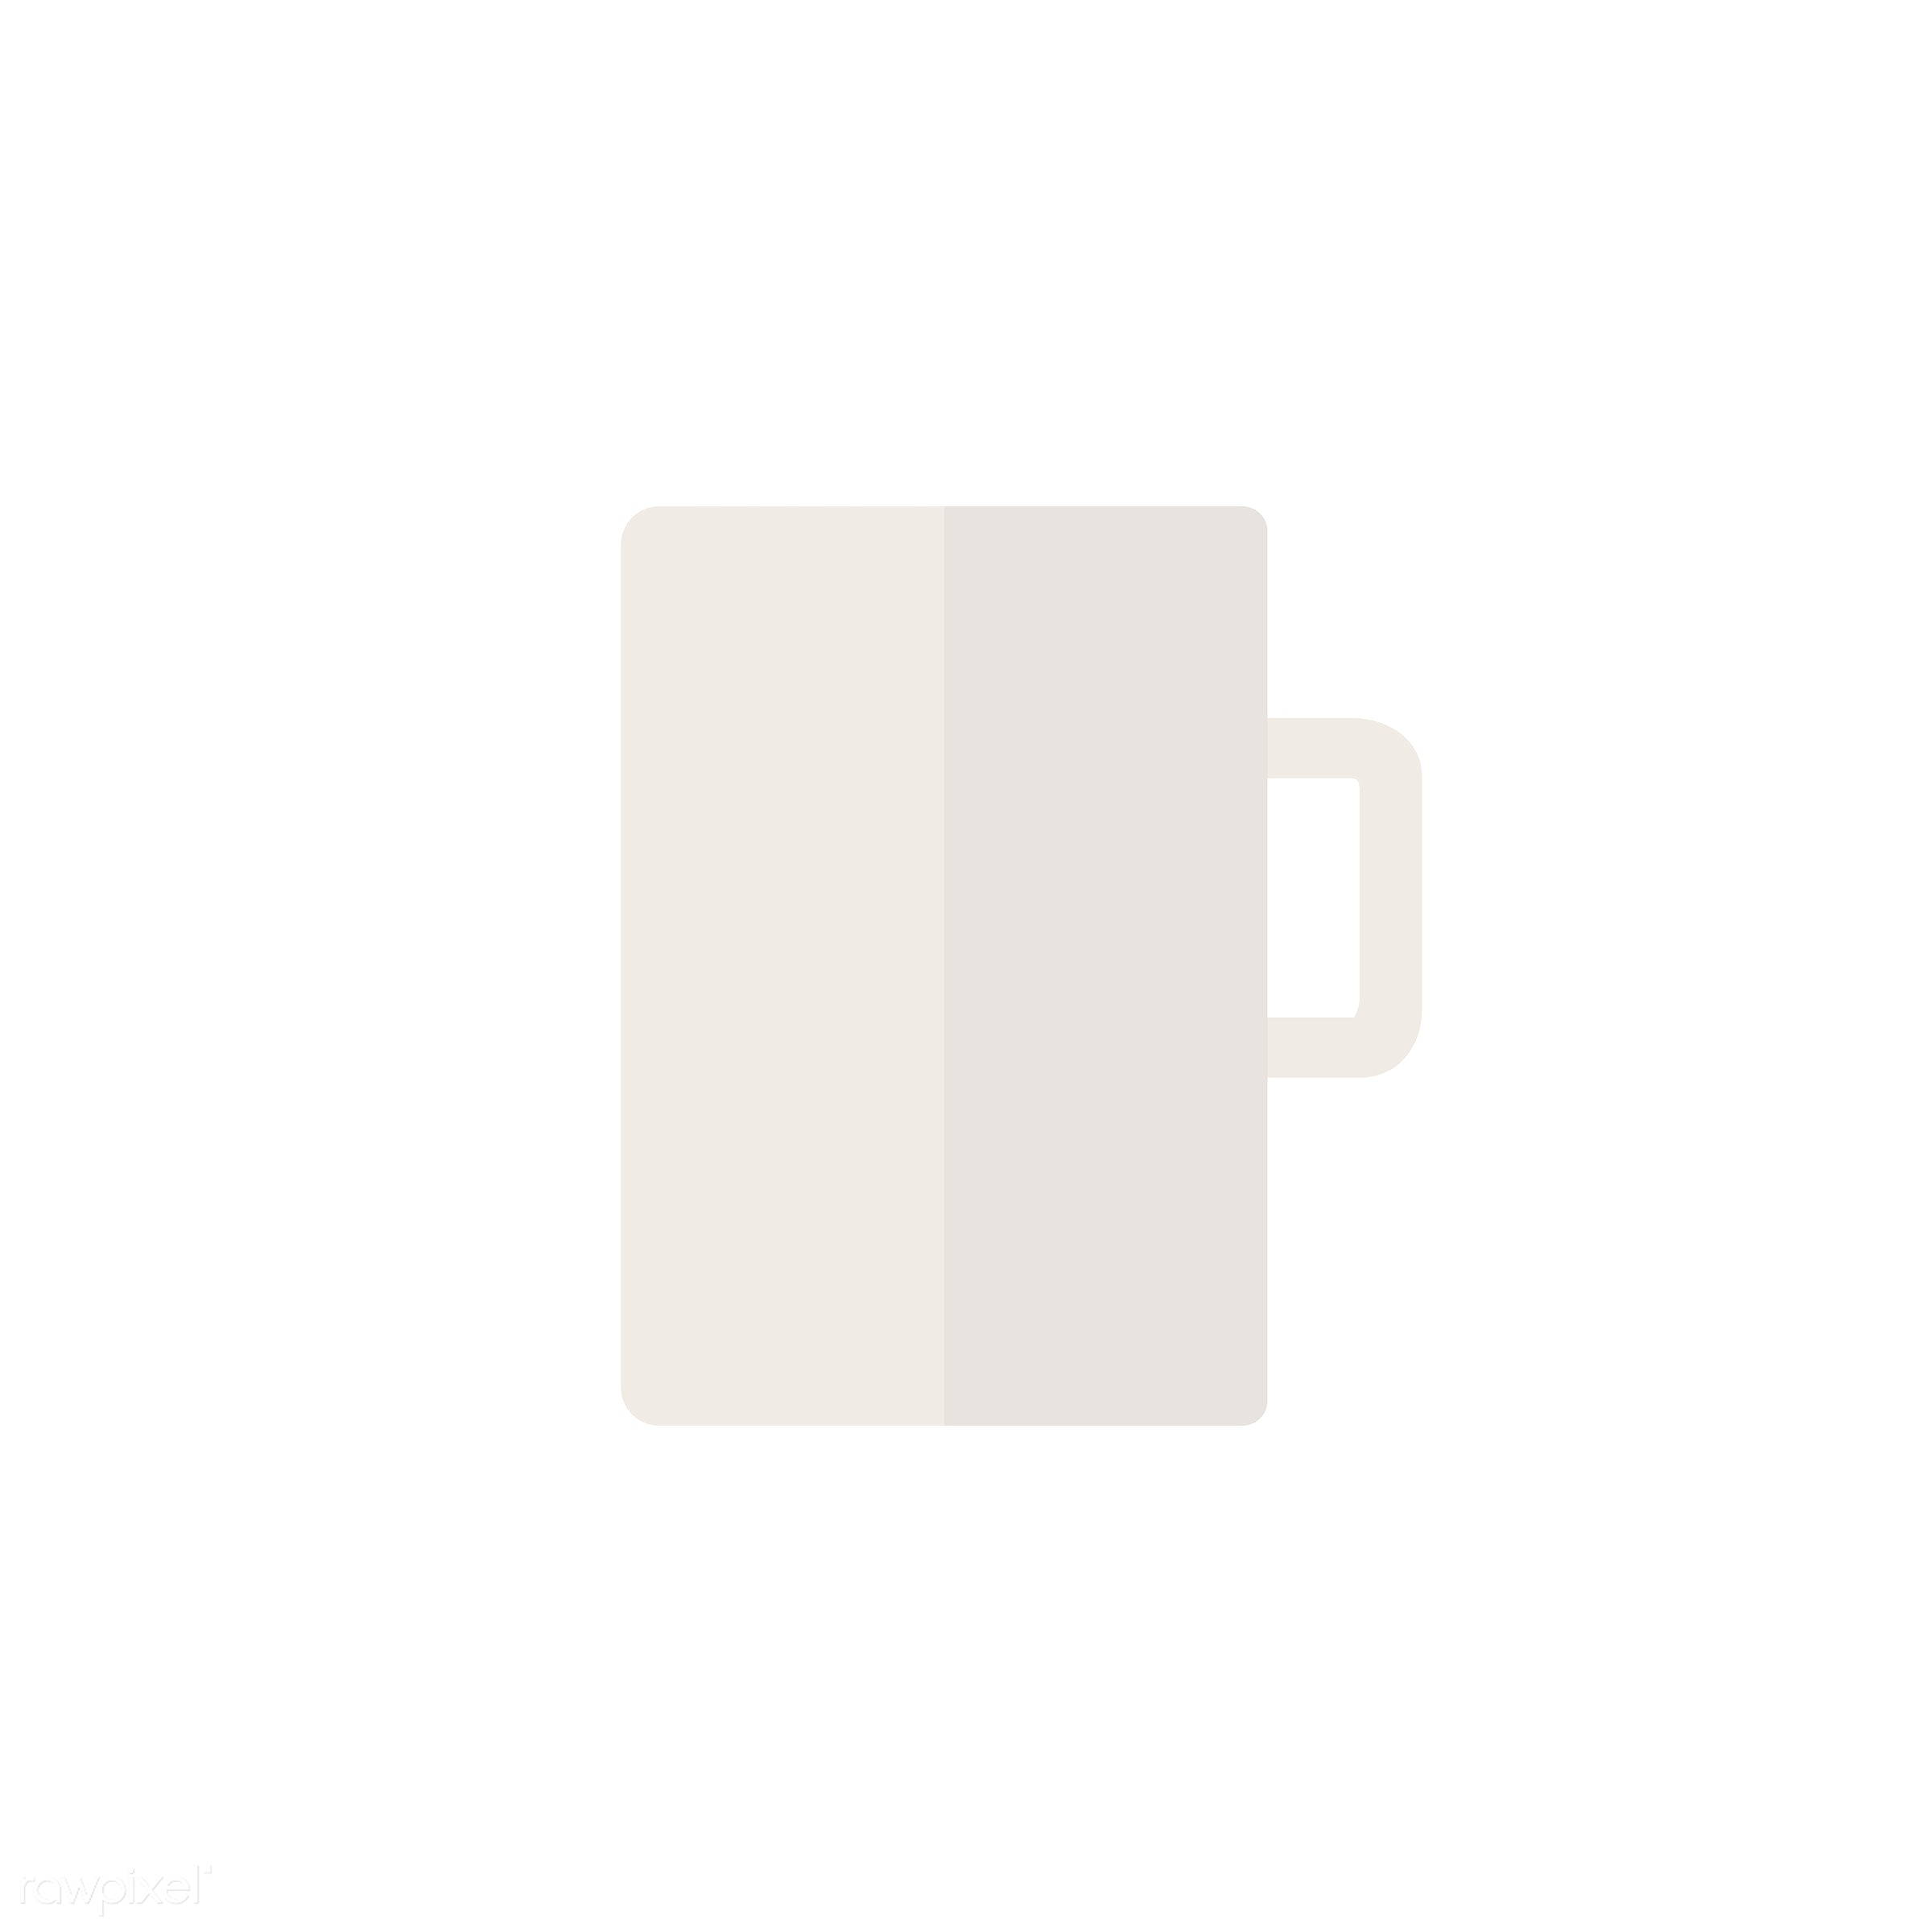 vector, graphic, illustration, icon, symbol, colorful, cute, mug, tea, tea cup, hot drink, drink, beverage, water, coffee,...